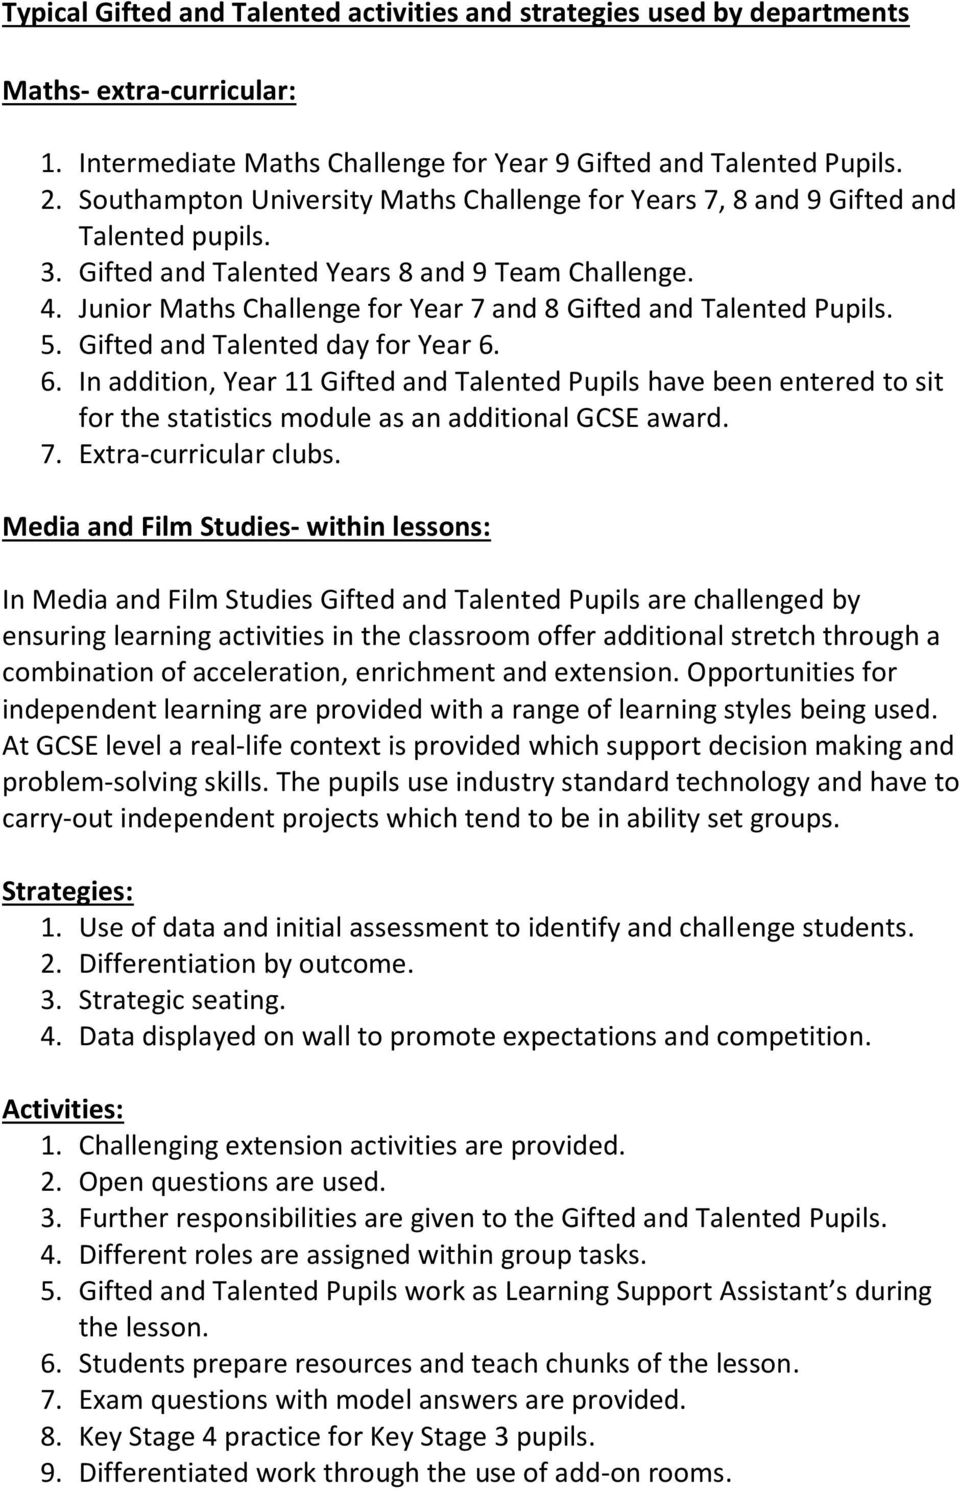 6. In addition, Year 11 Gifted and Talented Pupils have been entered to sit for the statistics module as an additional GCSE award. 7. Extra-curricular clubs.